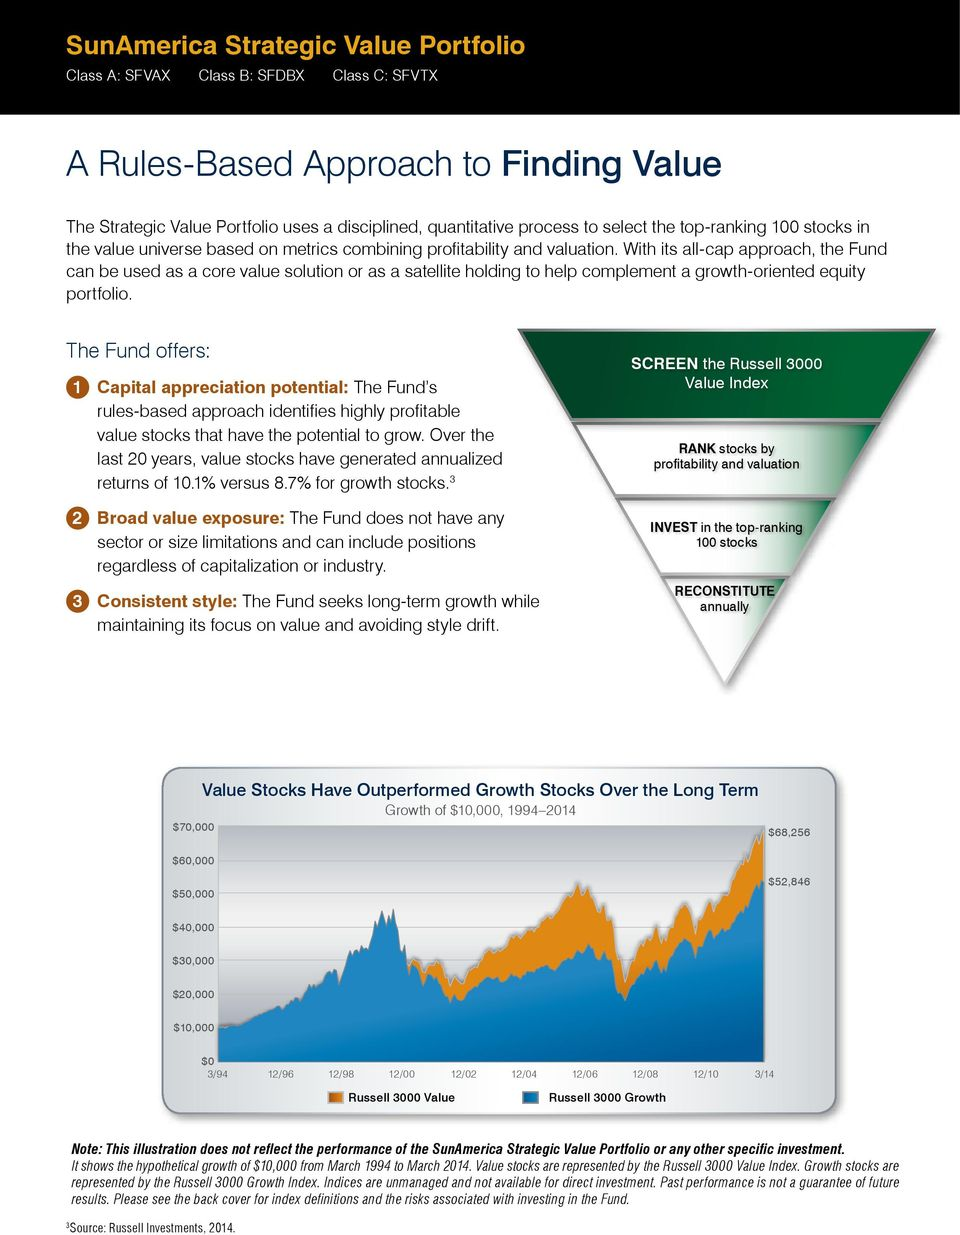 With its all-cap approach, the Fund can be used as a core value solution or as a satellite holding to help complement a growth-oriented equity portfolio.